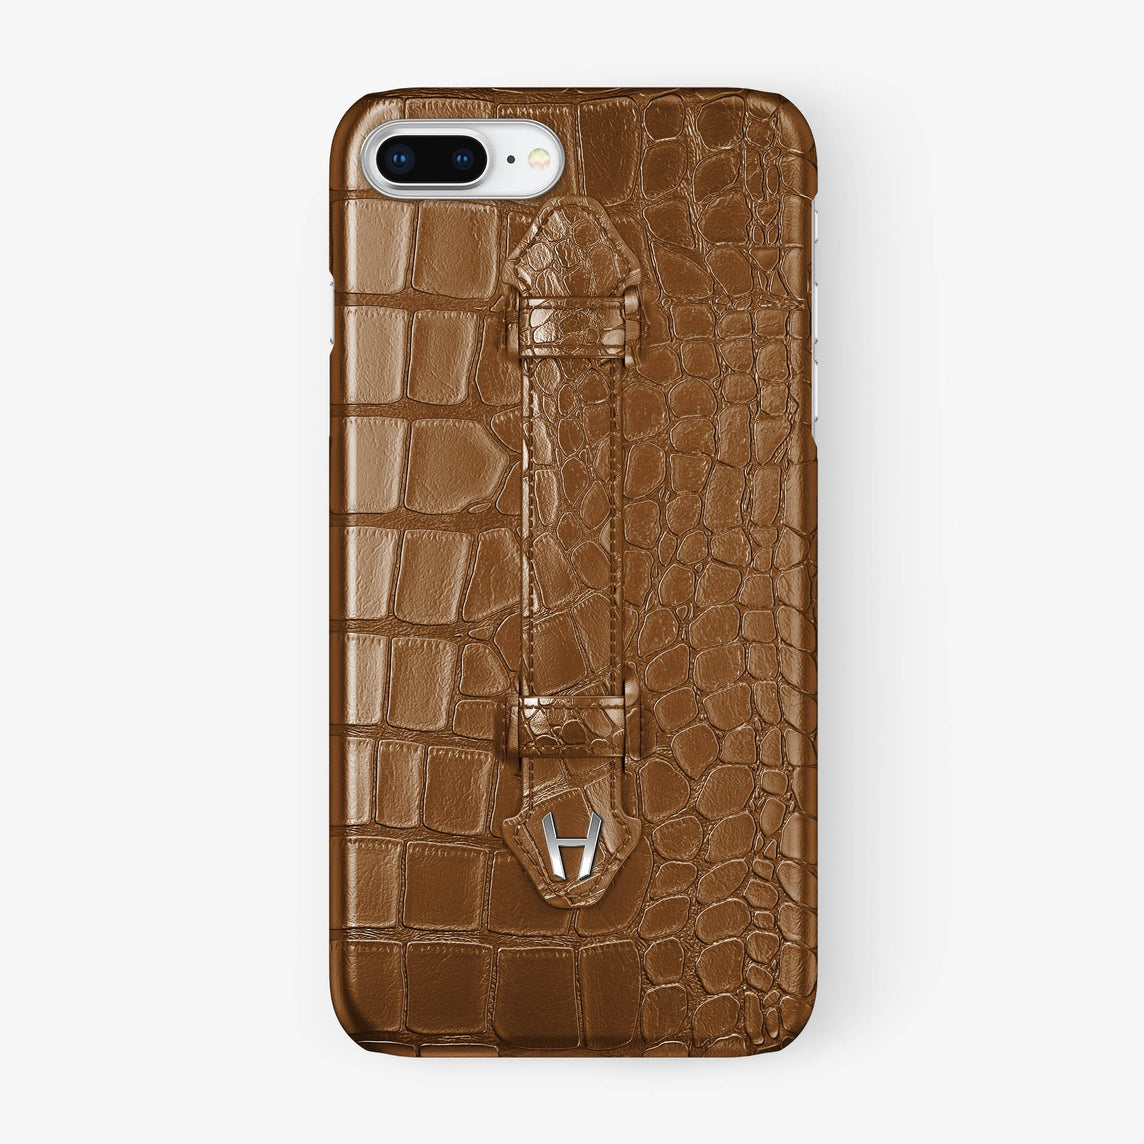 Alligator Finger Case iPhone 7/8 Plus | Cognac - Stainless Steel